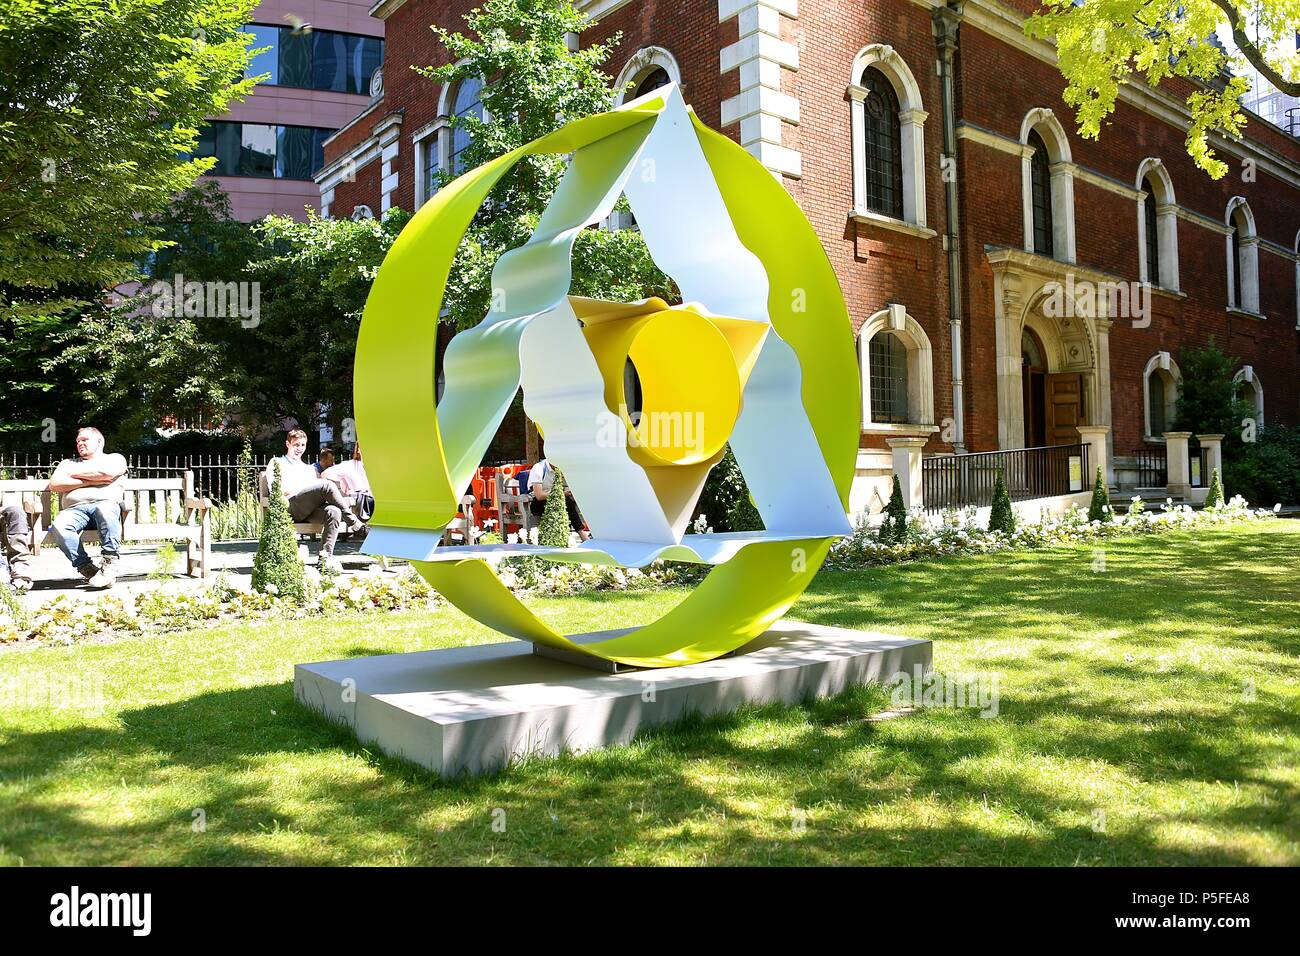 City Of London Public Art Programme Sculpture in The City Opens In London's Square Mile 26 June 2018 - Stock Image